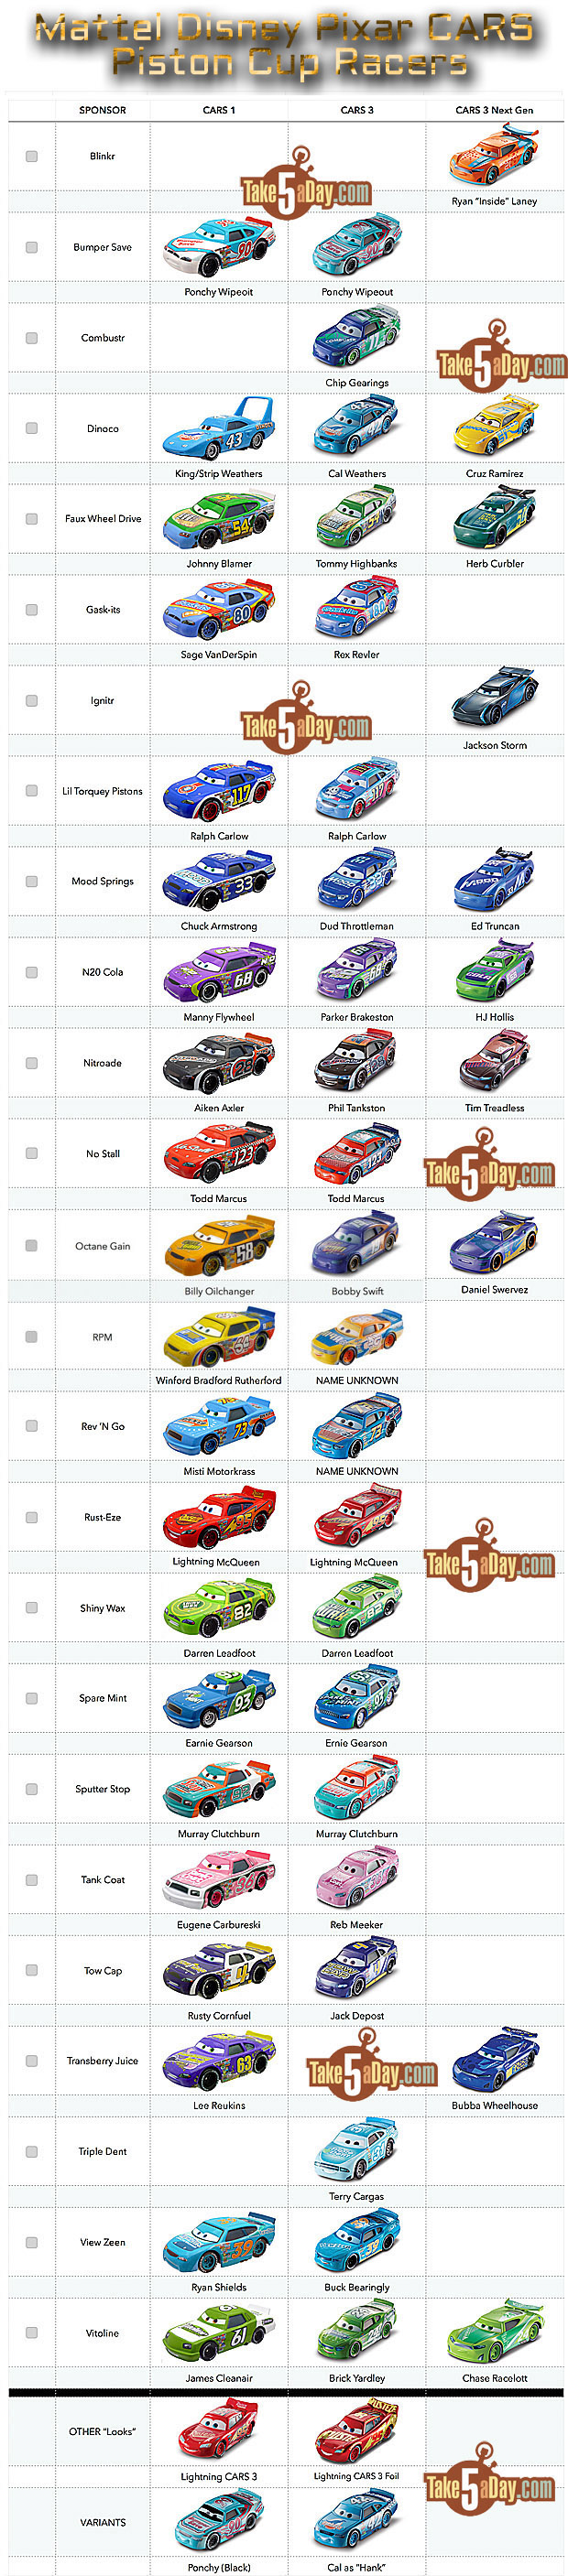 Mattel Disney Pixar CARS 3: Piston Cup Racers CARS 1 to CARS 3 ...